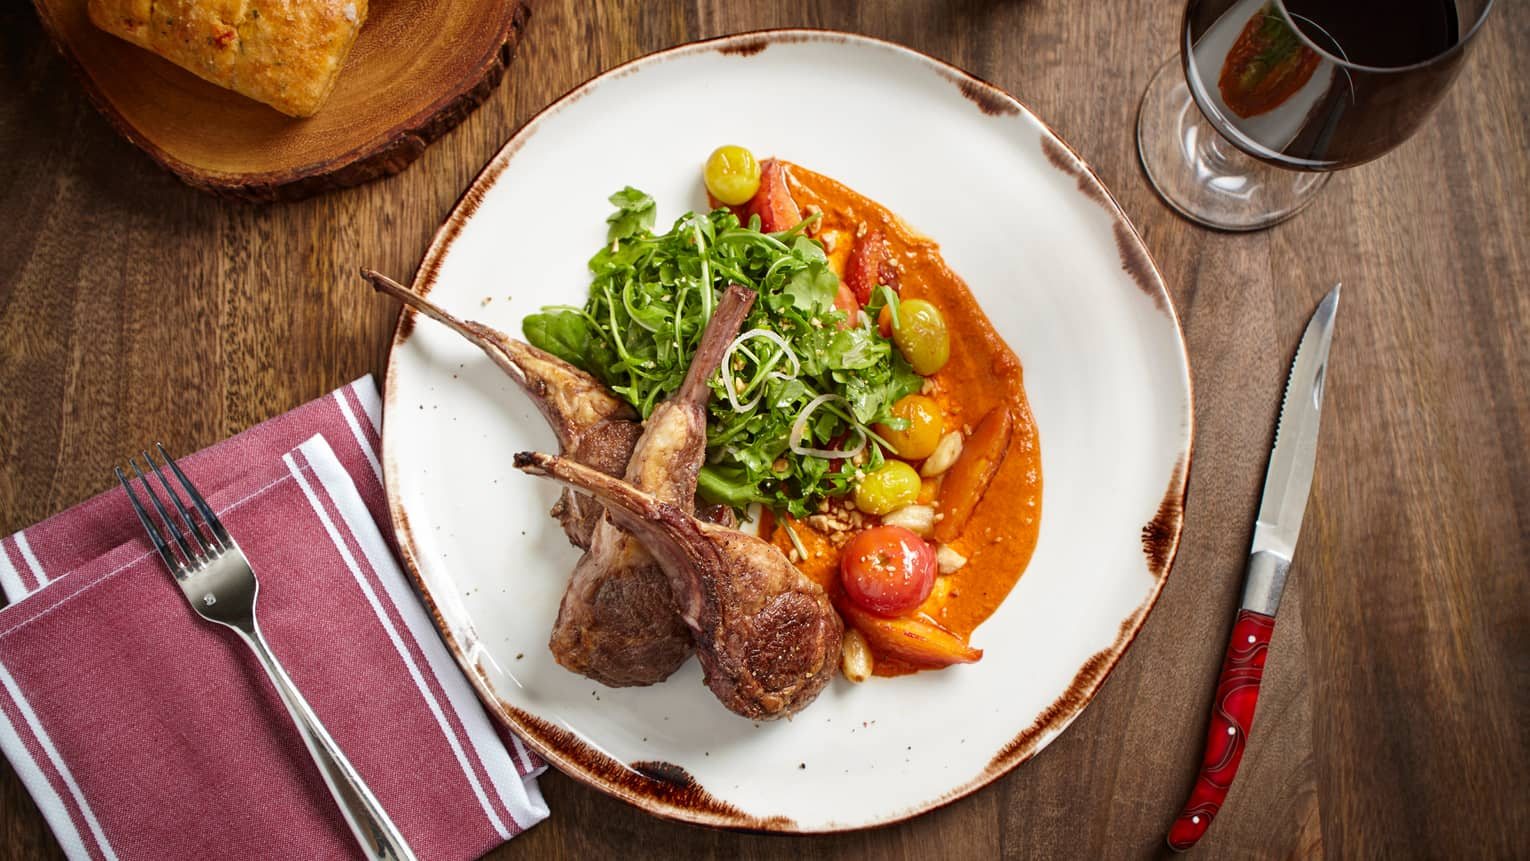 Looking down at white plate with seared lamb chops, greens and roasted vegetables in orange sauce